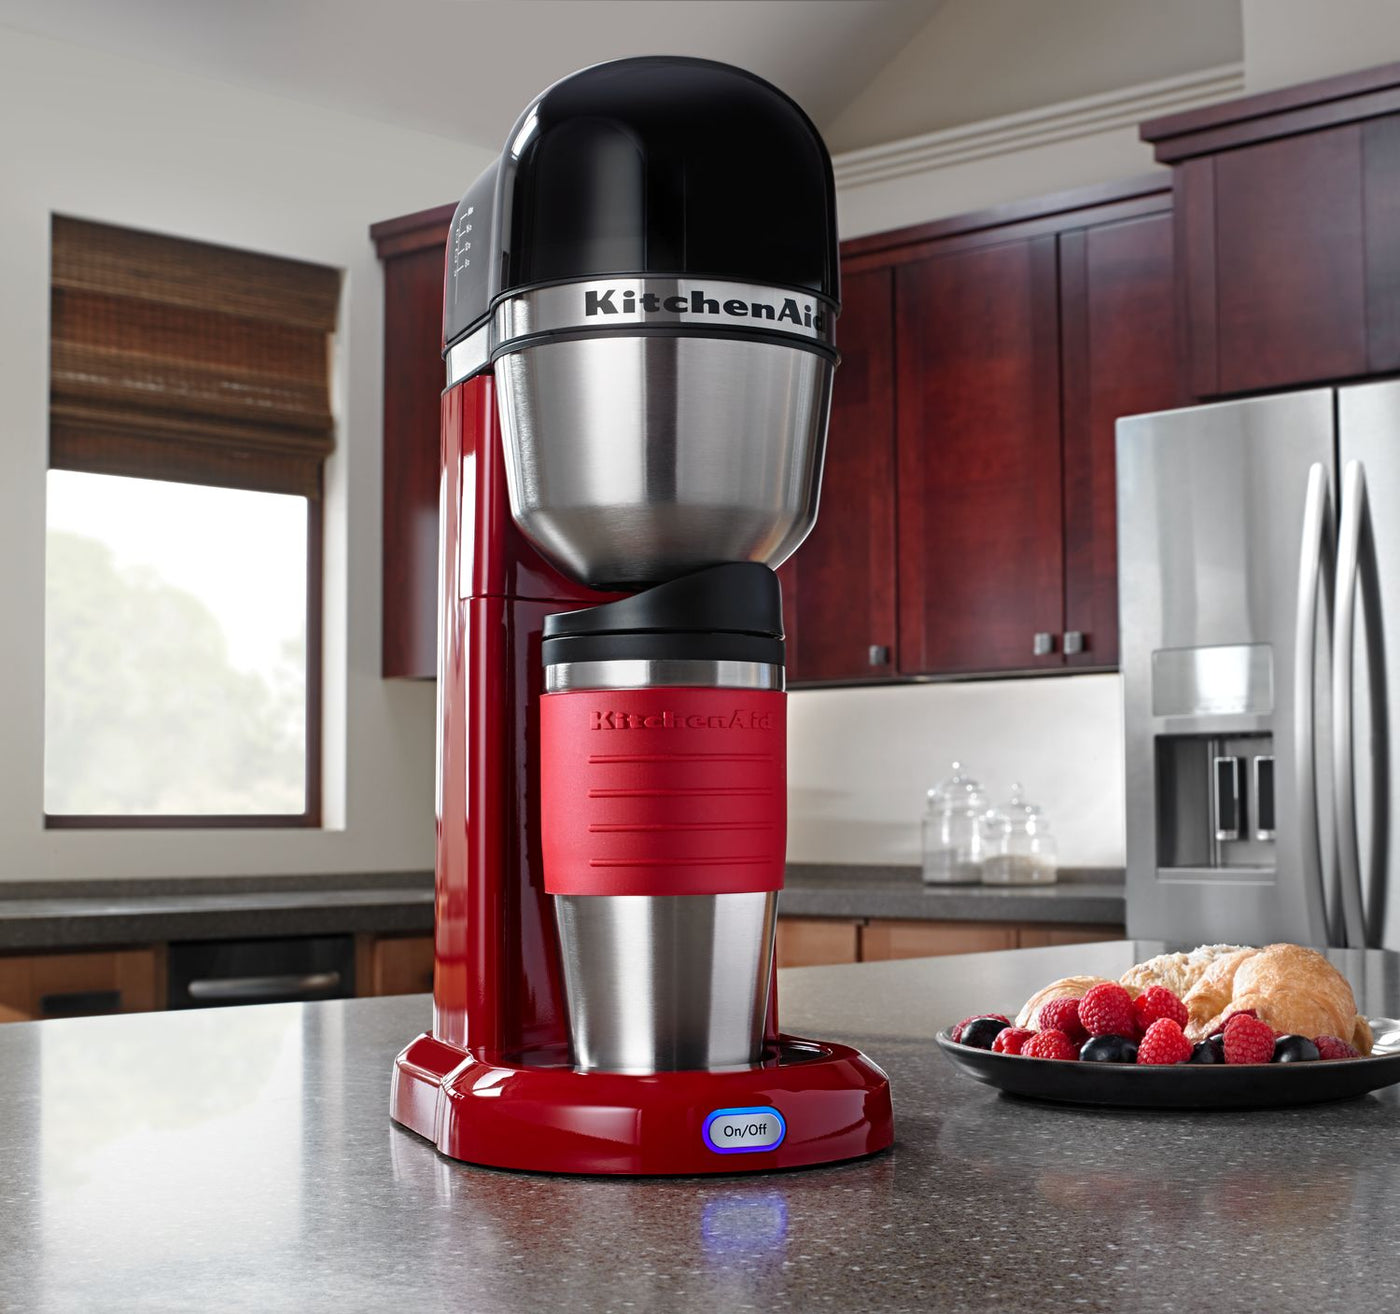 Tremendous Kitchenaid Empire Red Personal Coffee Maker With 18 Oz Thermal Mug Kcm0402Er Home Remodeling Inspirations Gresiscottssportslandcom